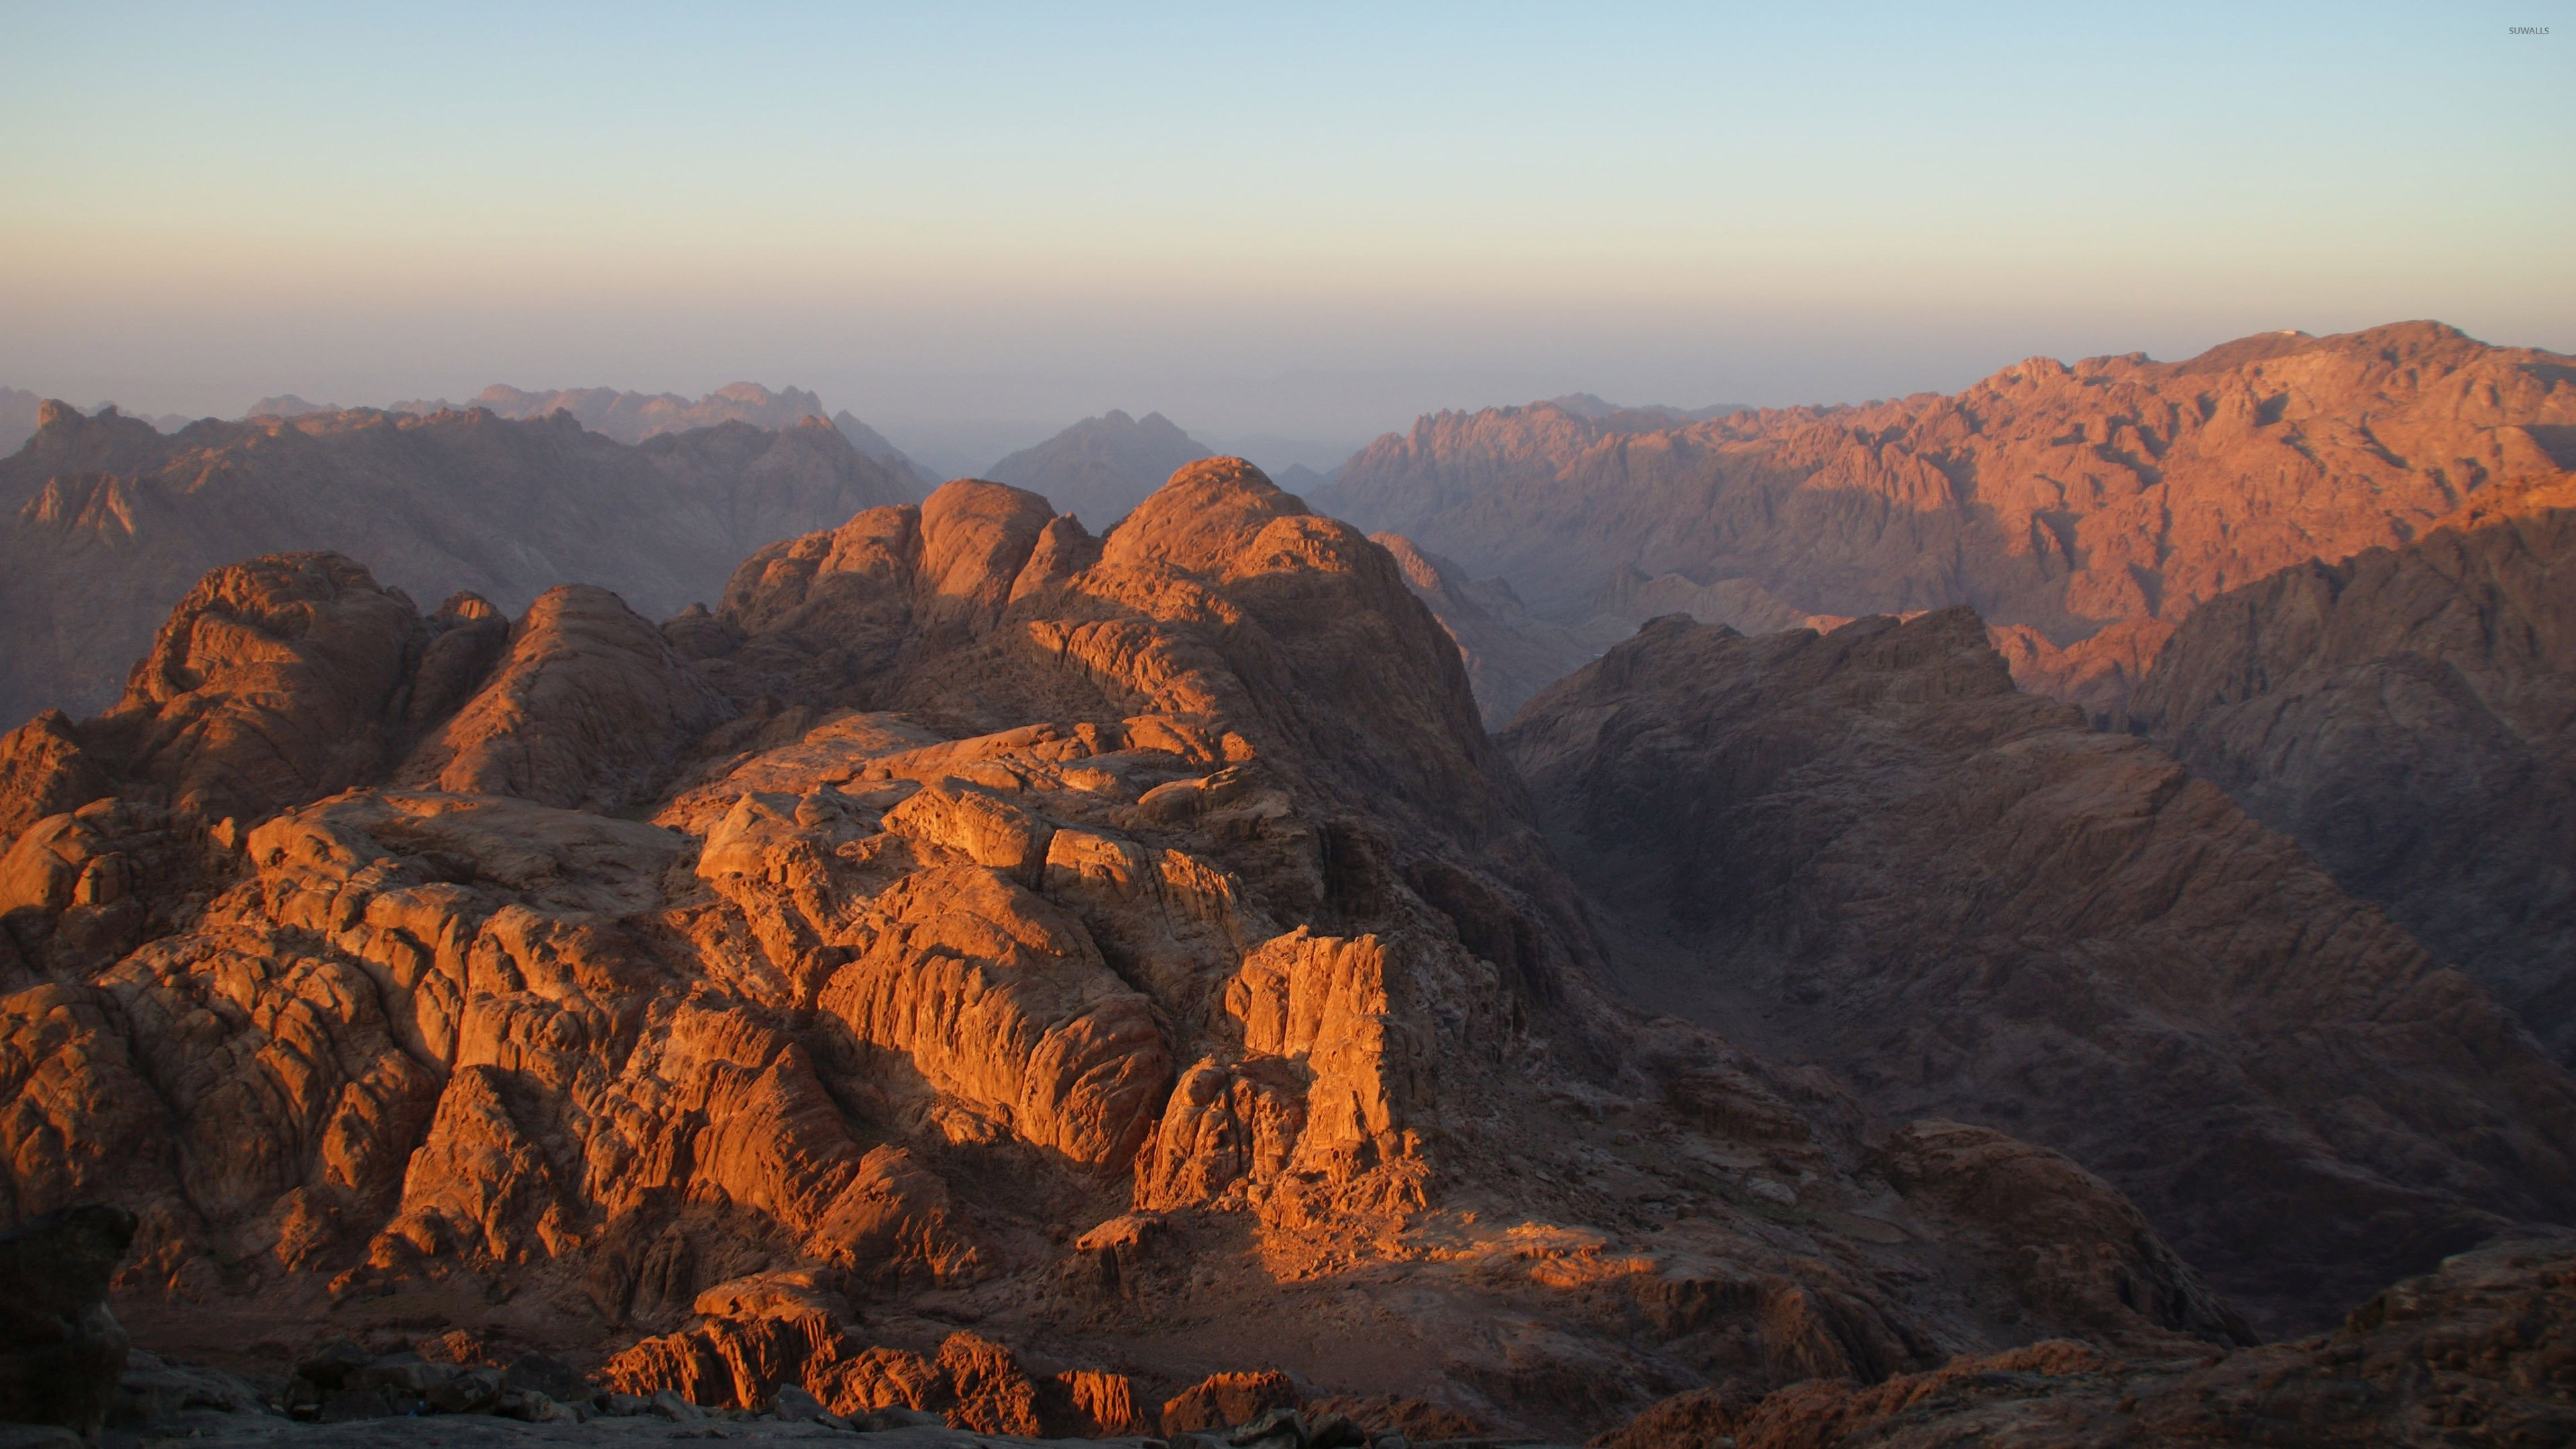 Mount Sinai wallpaper   Nature wallpapers   37689 3840x2160